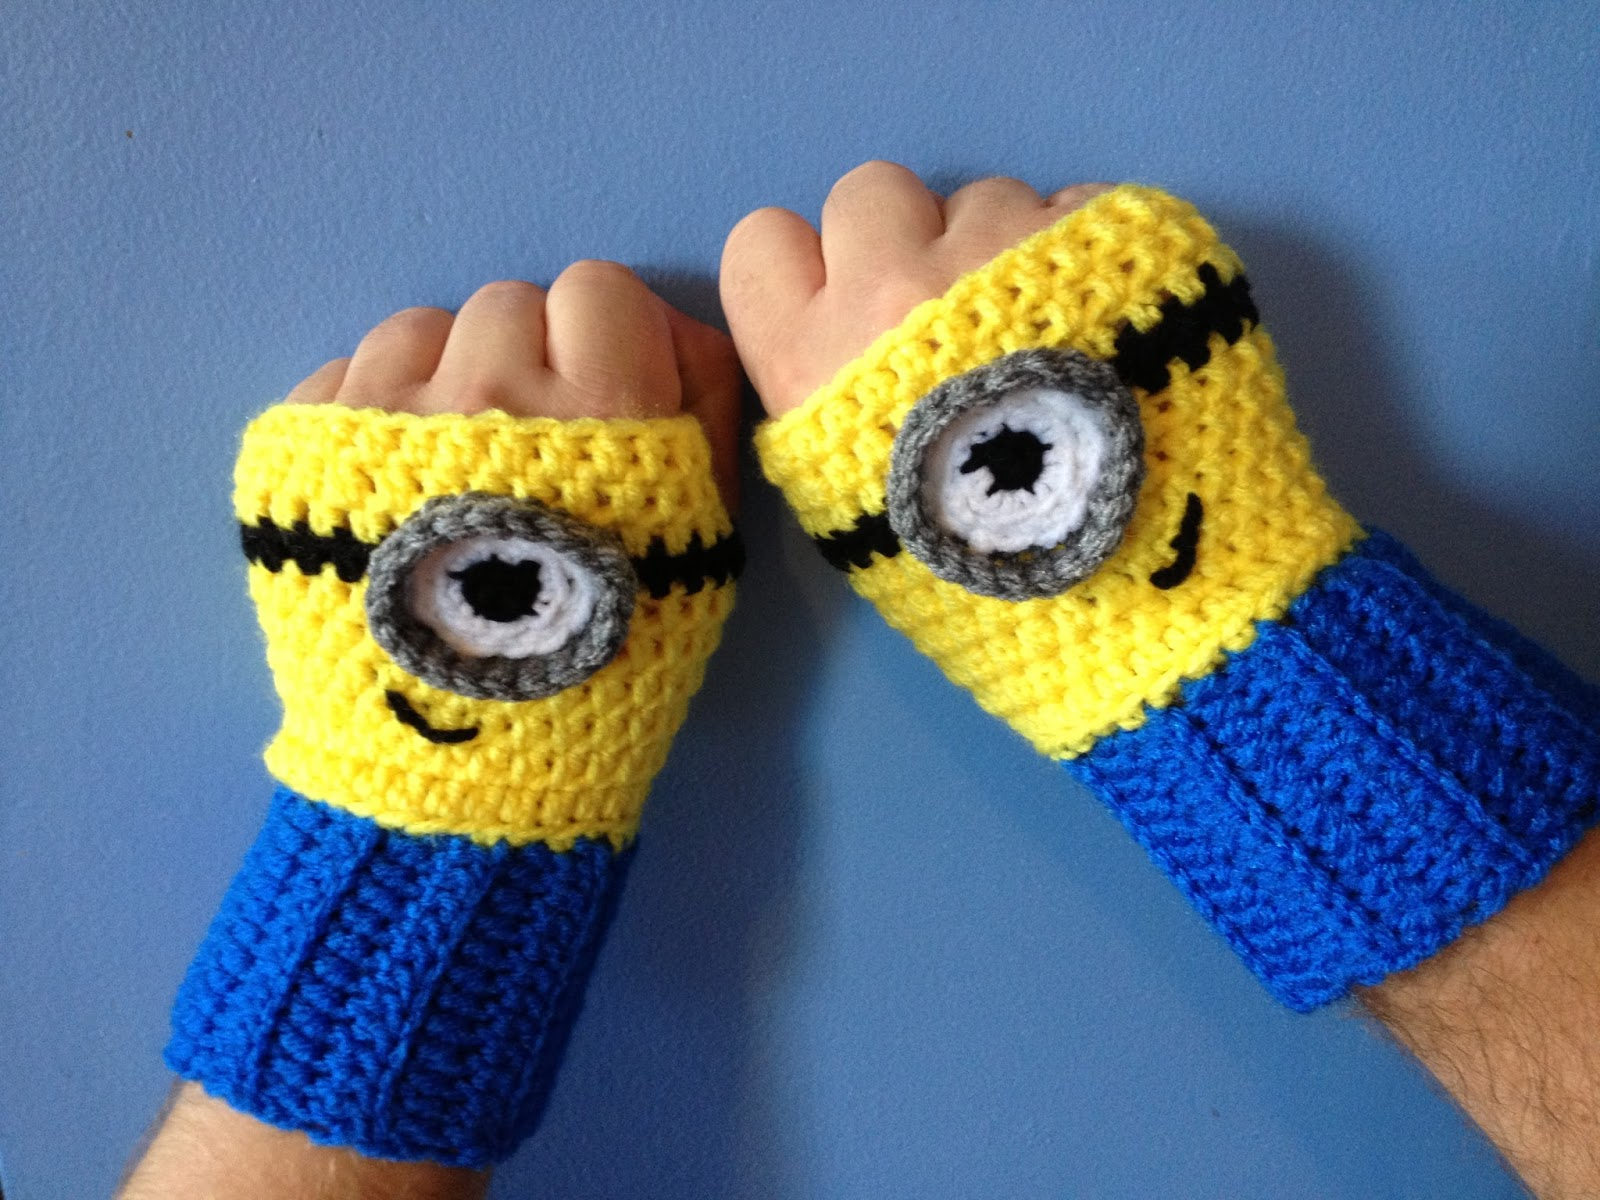 Crochet Patterns Minions : My Crocheted World: Despicable Me Minion Crochet Doll